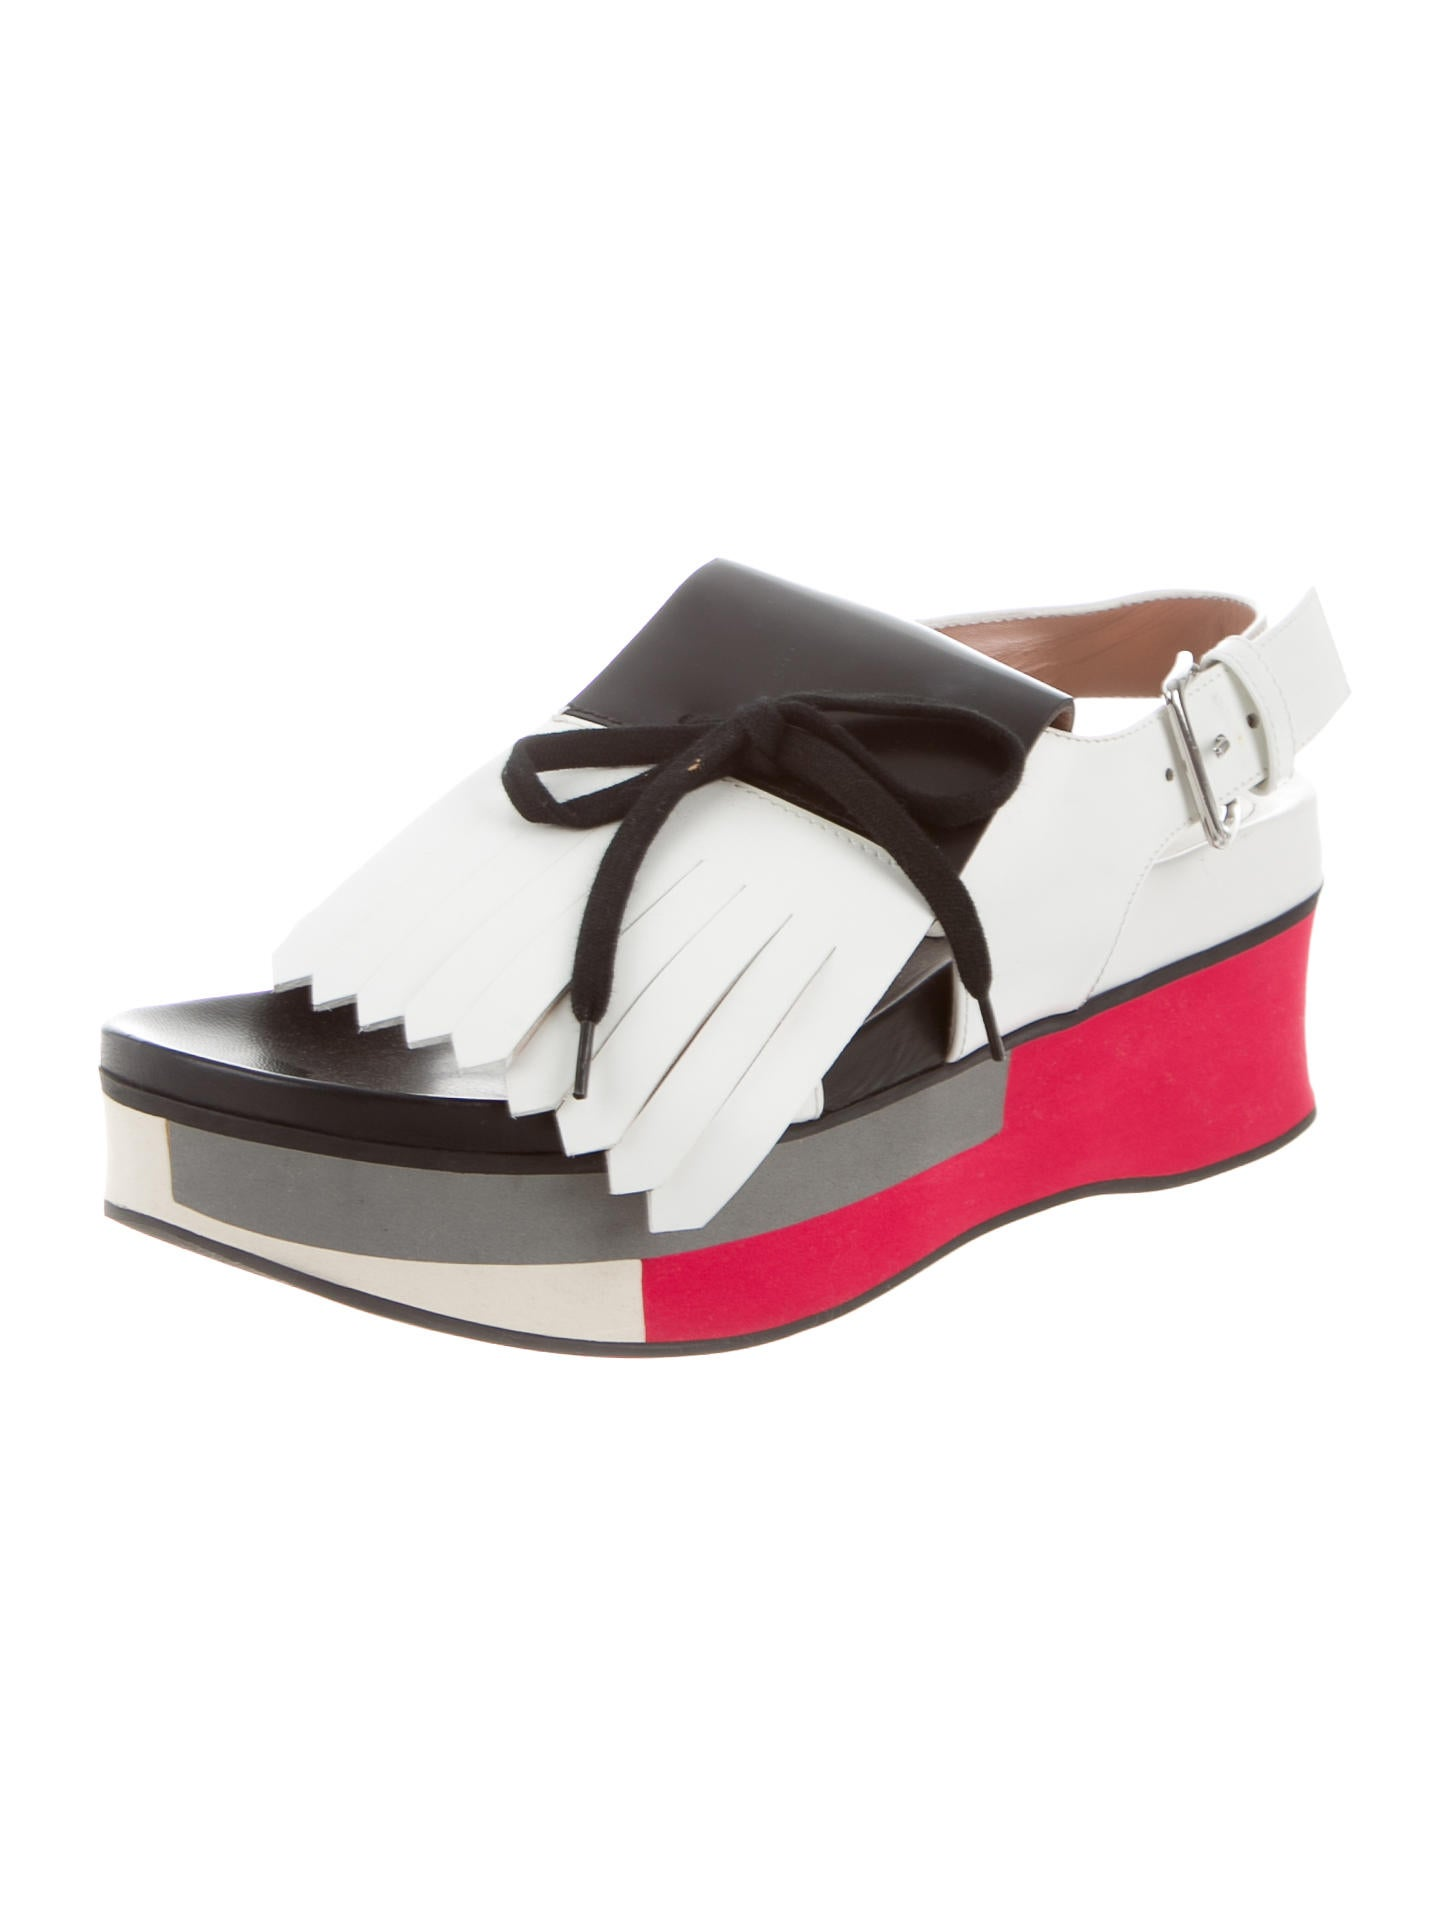 sale Cheapest cheap sale wholesale price Marni Kiltie-Accented Platform Sandals qrHoKhI